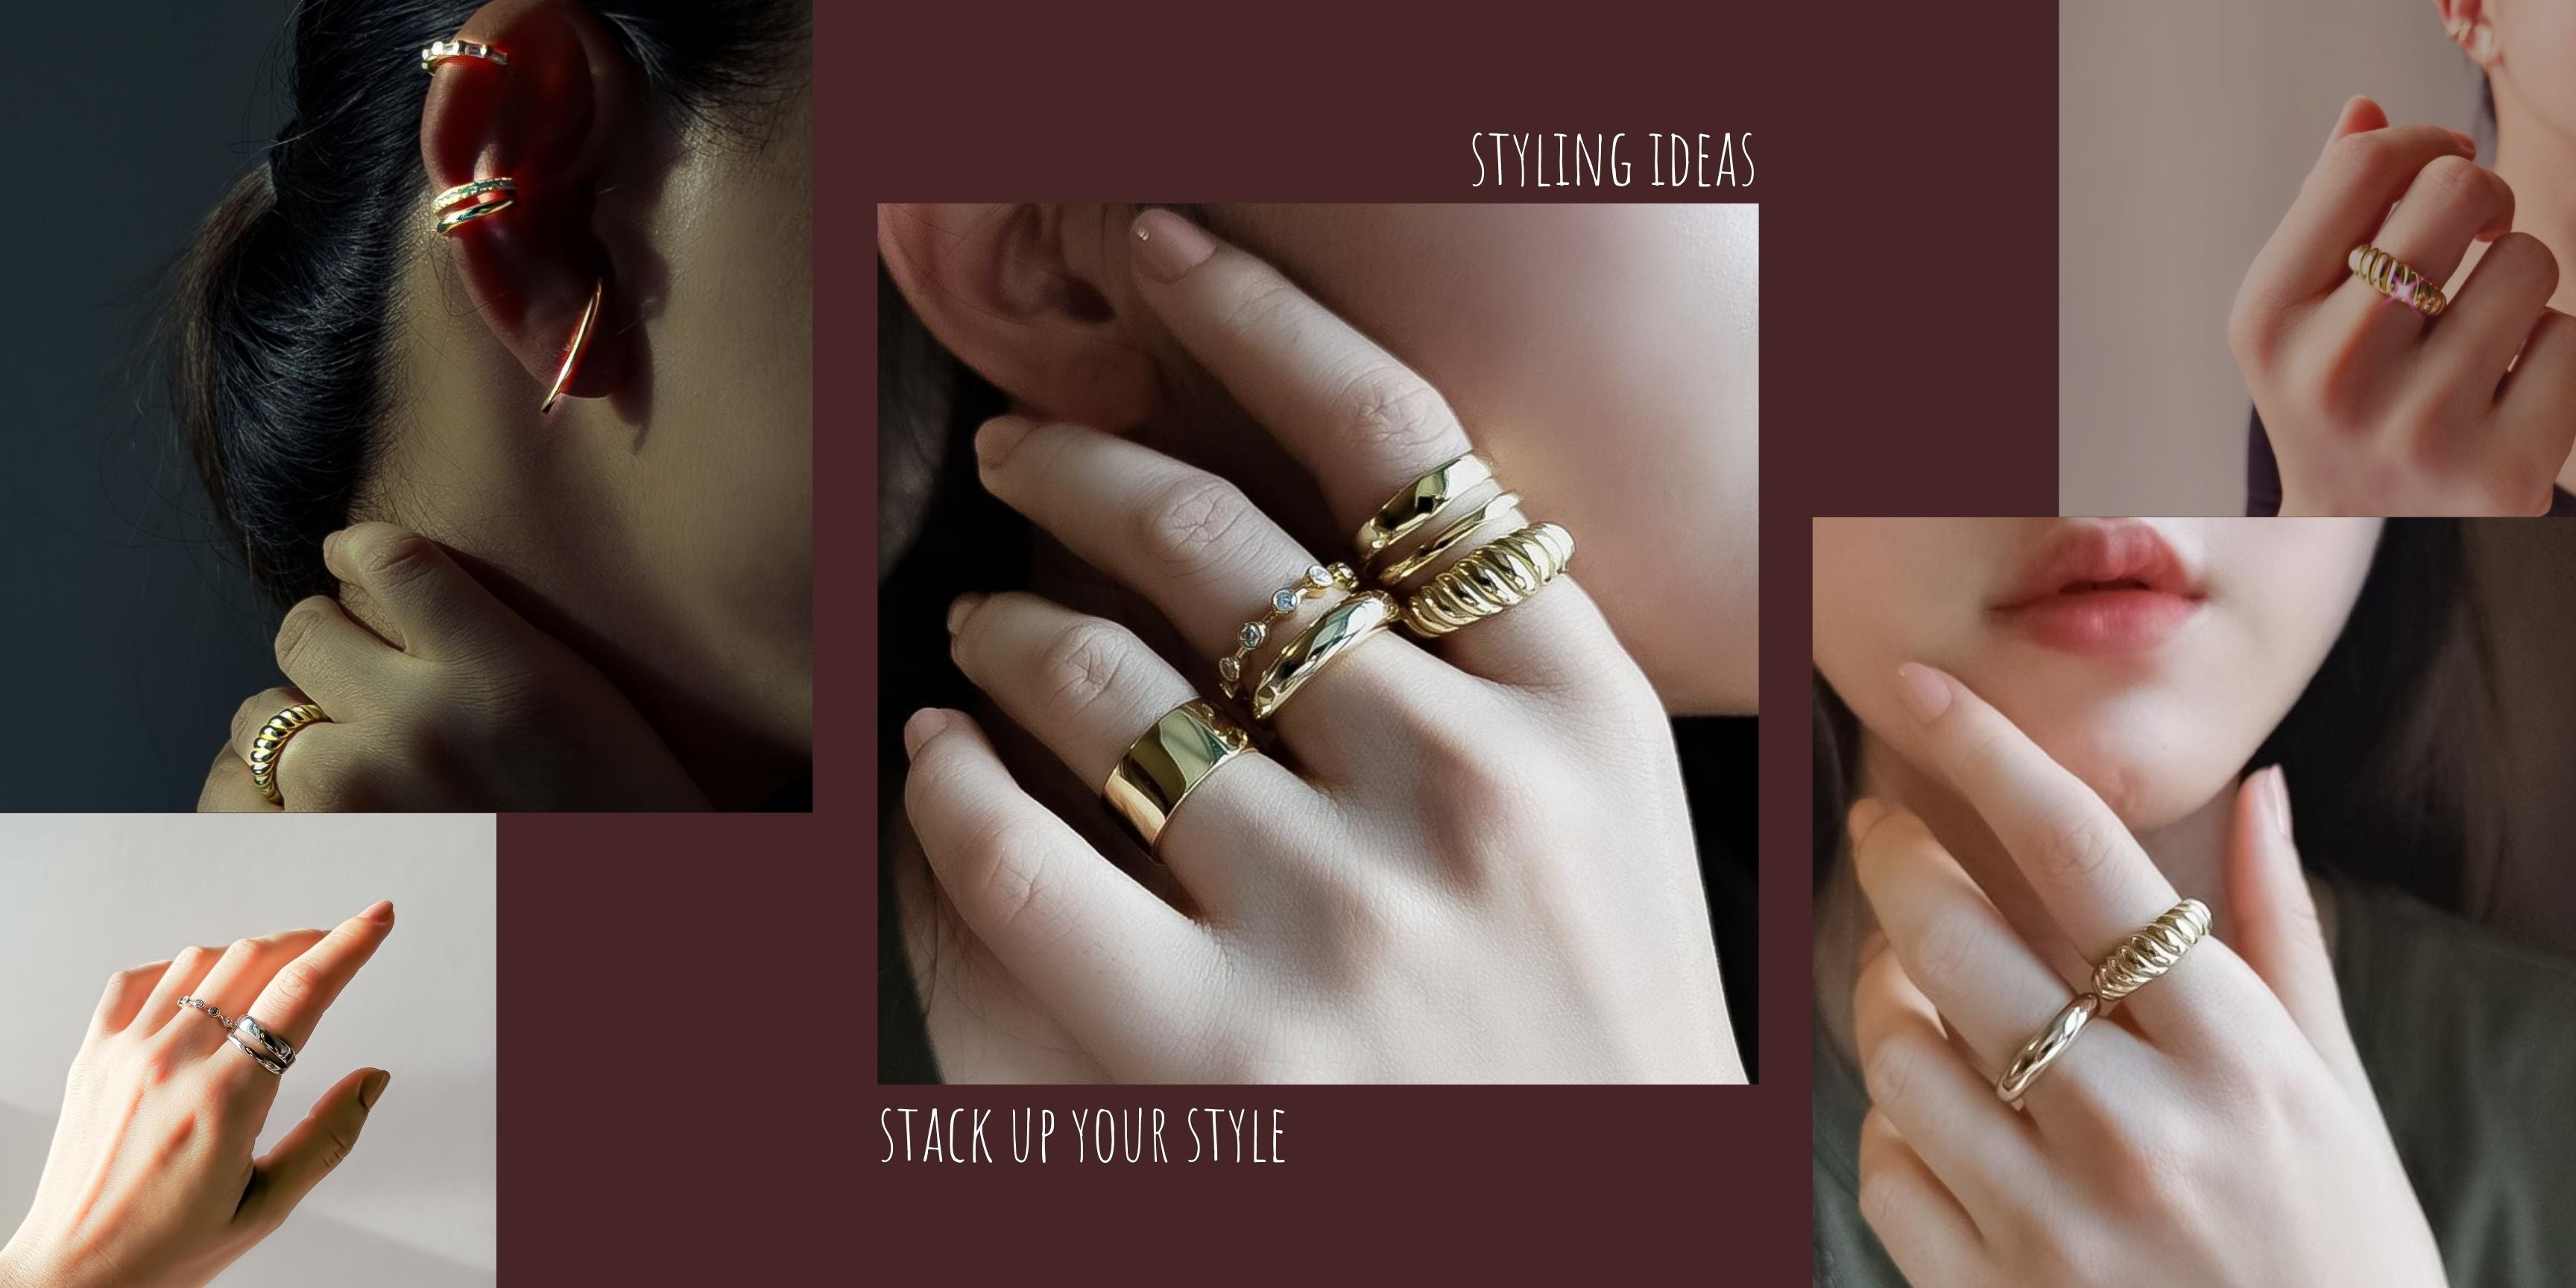 Kategory Jewelry Styling Ideas Stack up your style